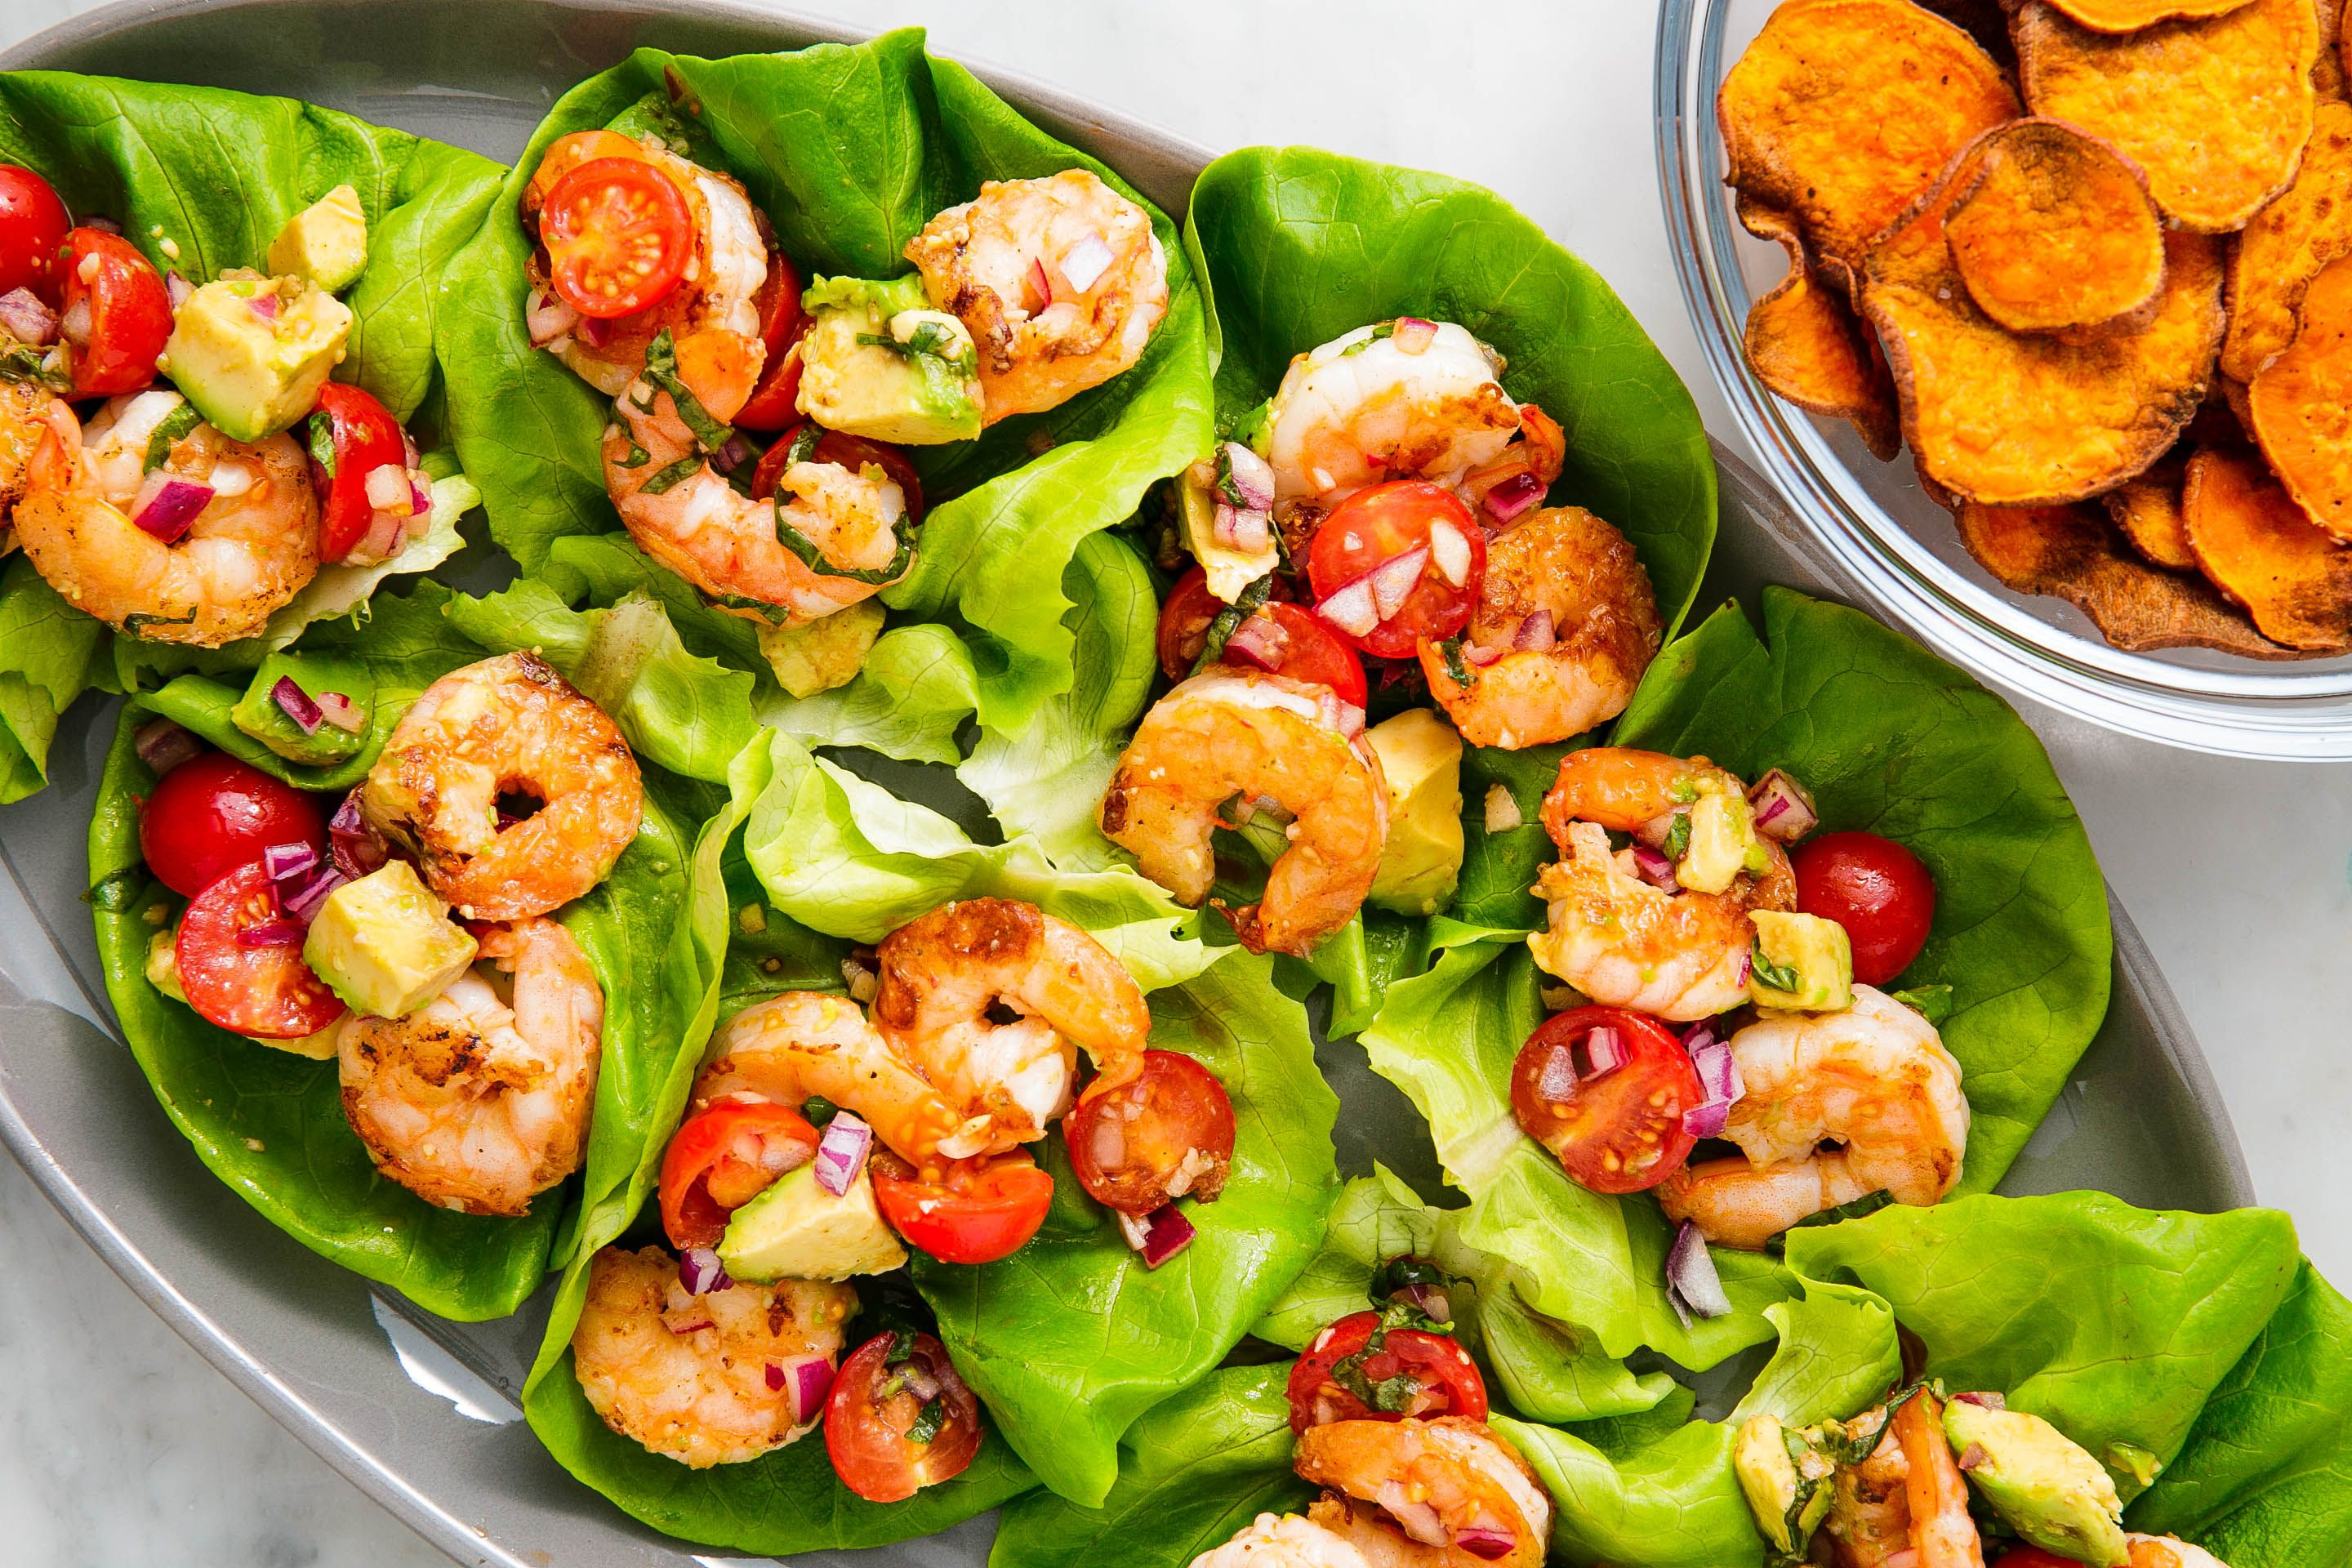 Best Avocado Shrimp Salad Lettuce Wraps Recipe How To Make Avocado Shrimp Salad Lettuce Wraps